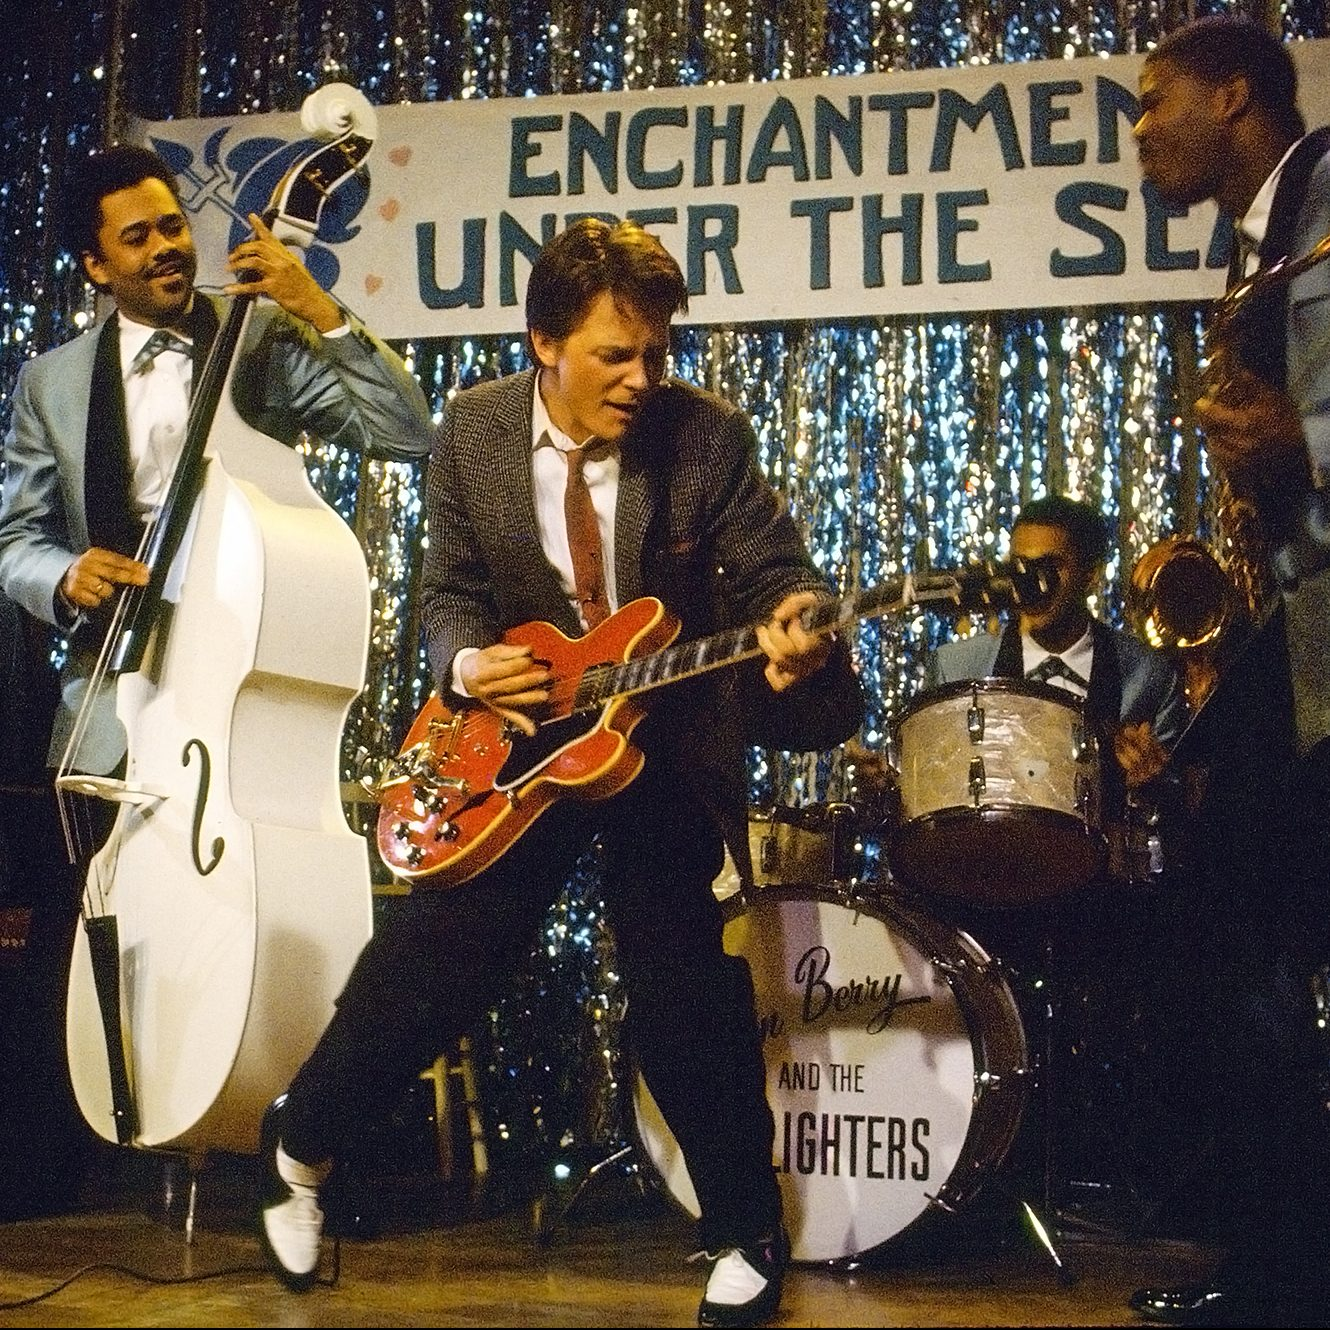 back to the future johnny b goode e1600167022327 20 Things You Missed In Back To The Future